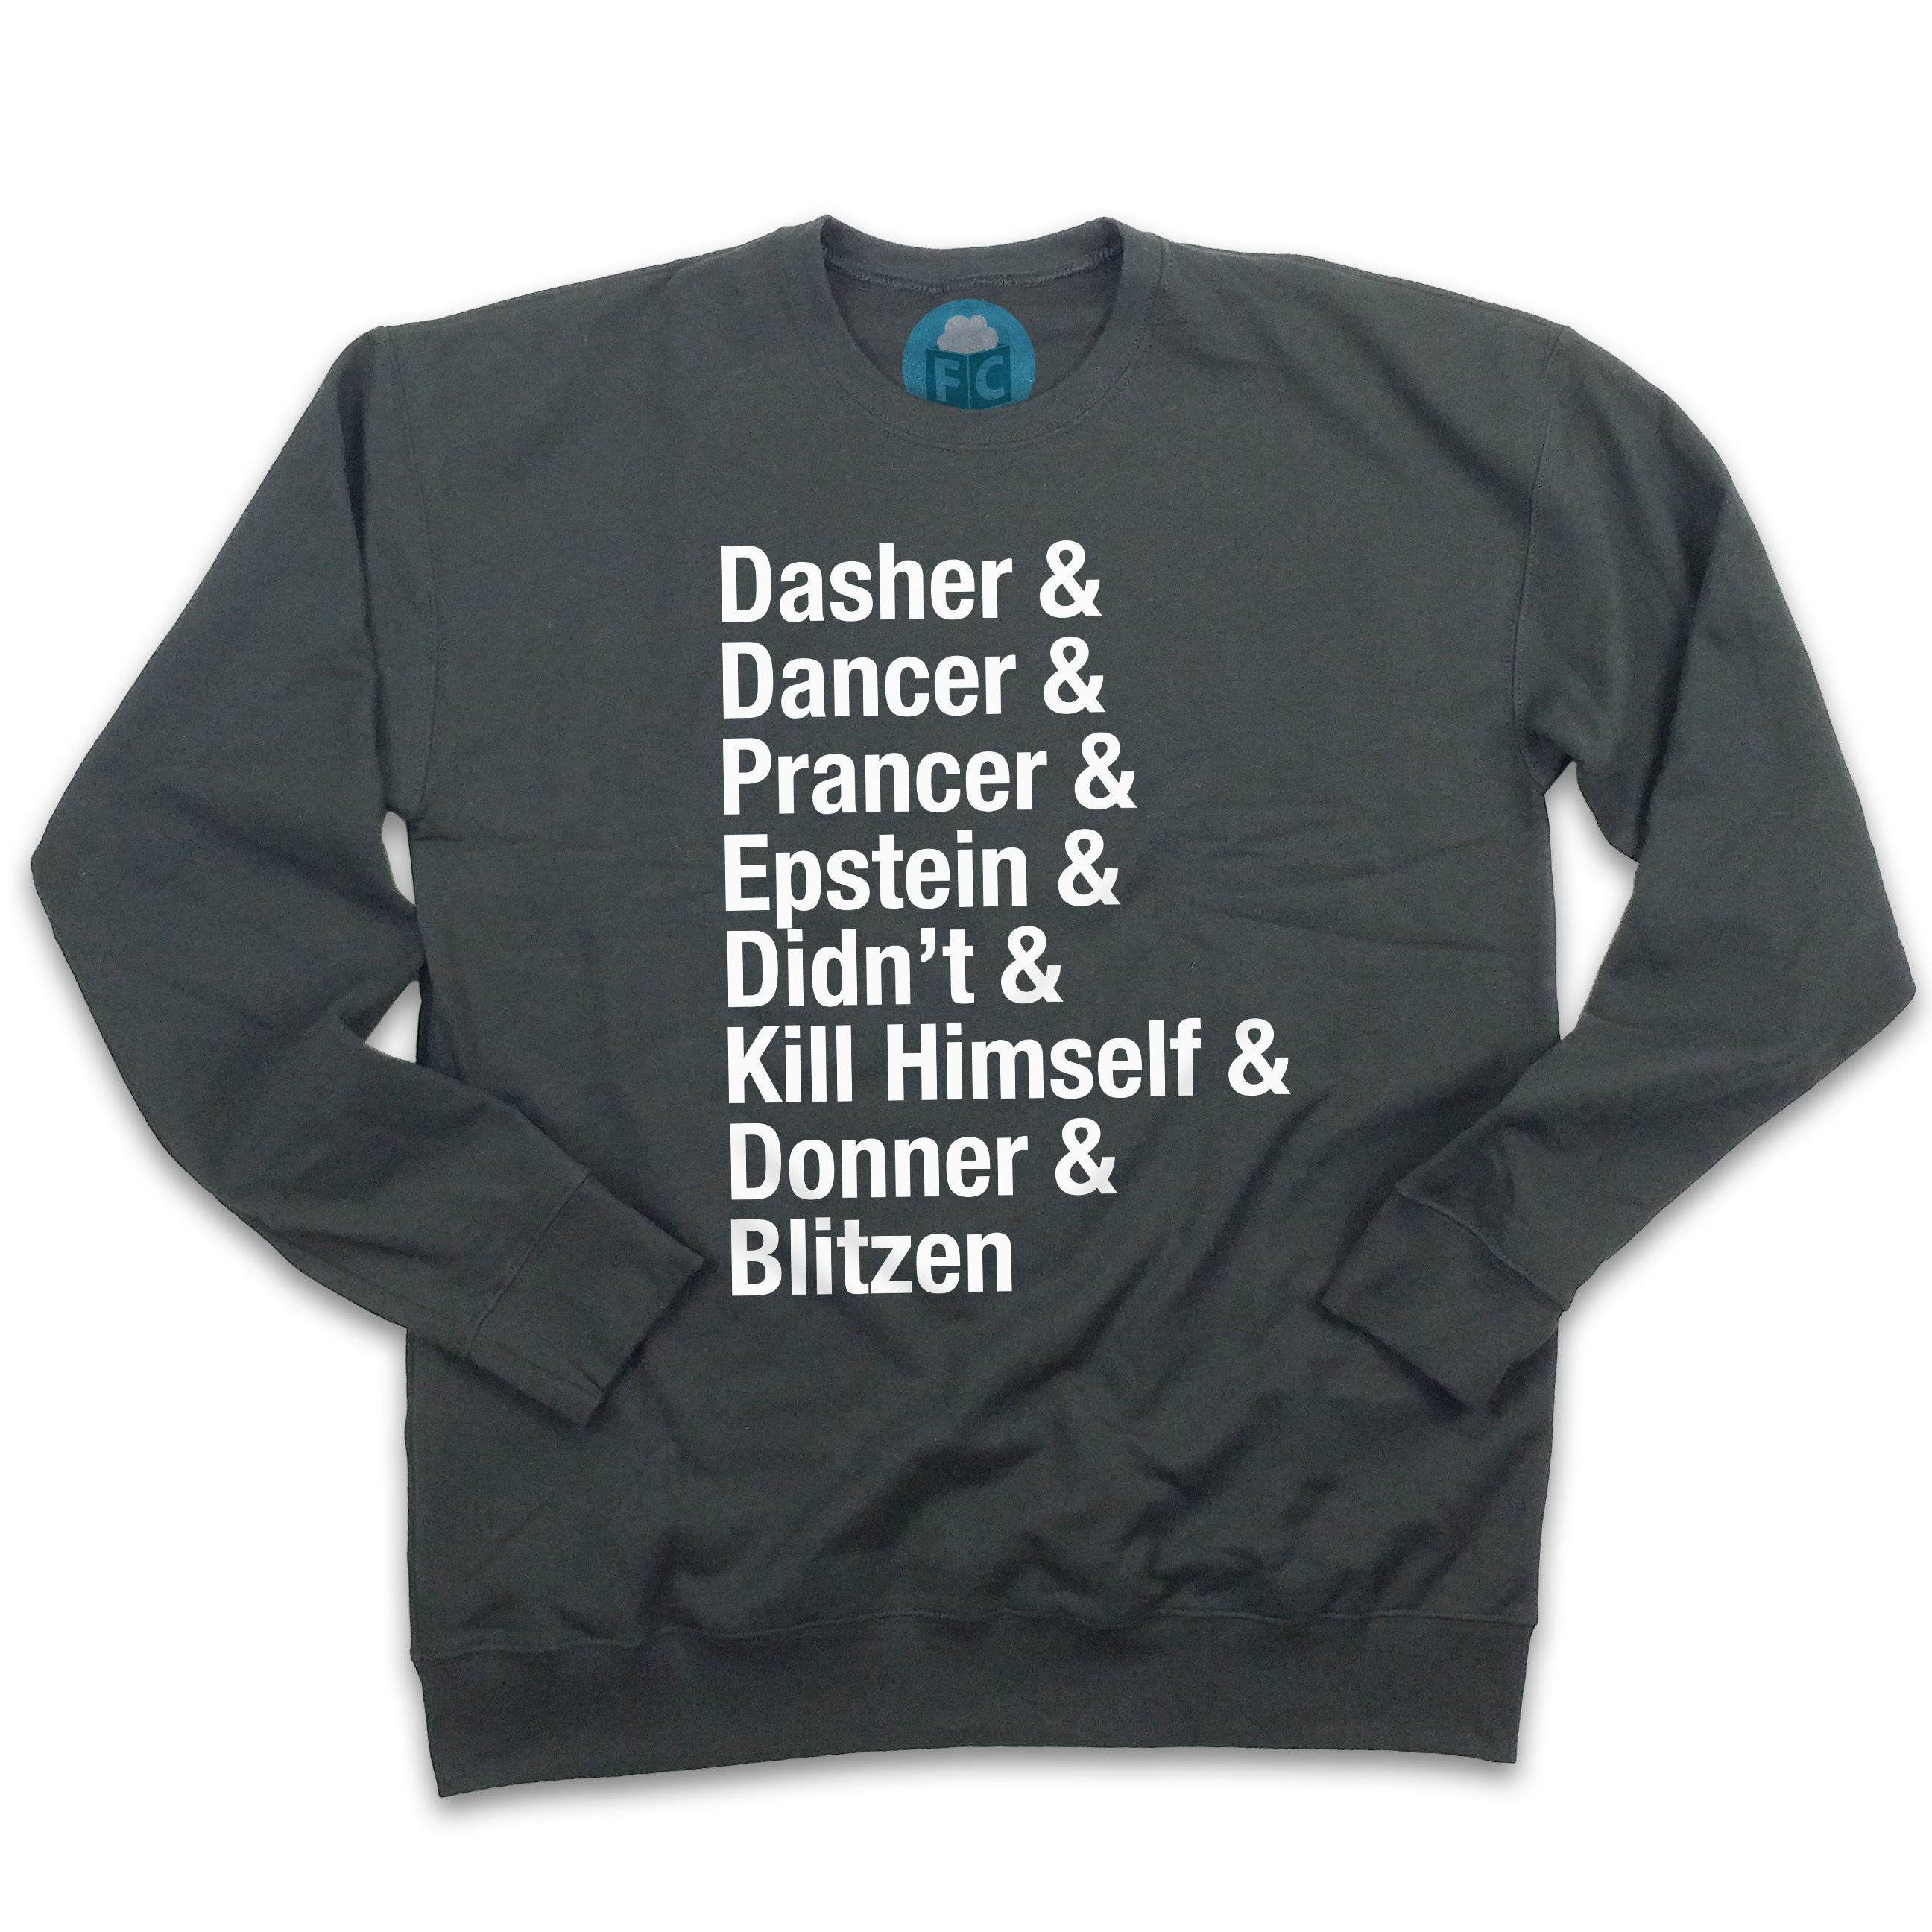 Dasher \u0026 Epstein Didn\u0027t Kill Himself Ugly Christmas Sweatshirt